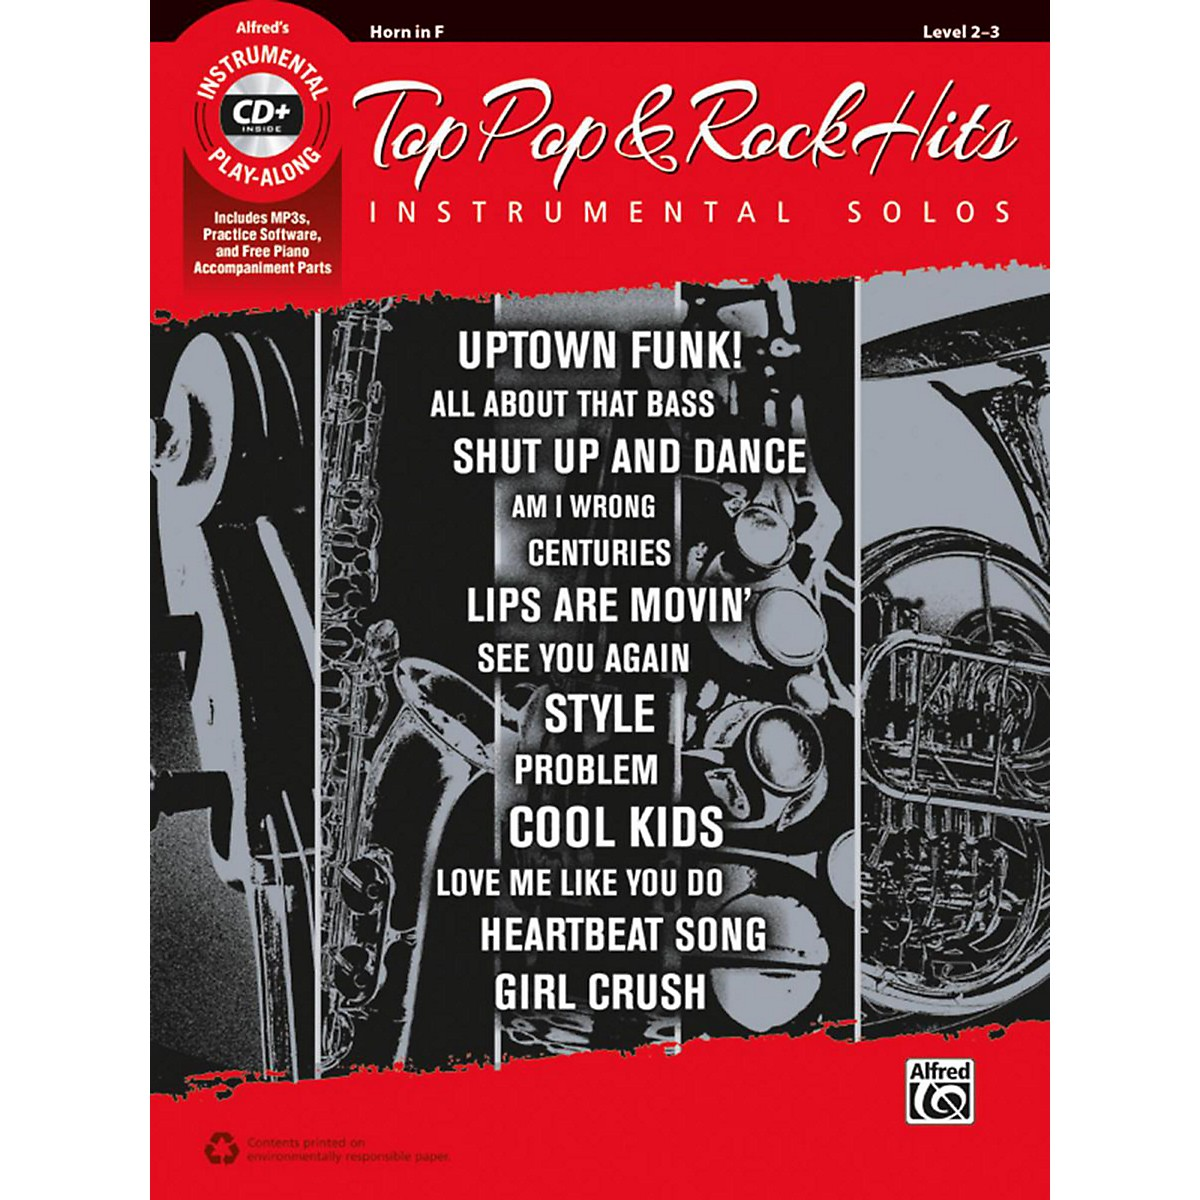 Alfred Top Pop & Rock Hits Instrumental Solos Horn in F Book & CD